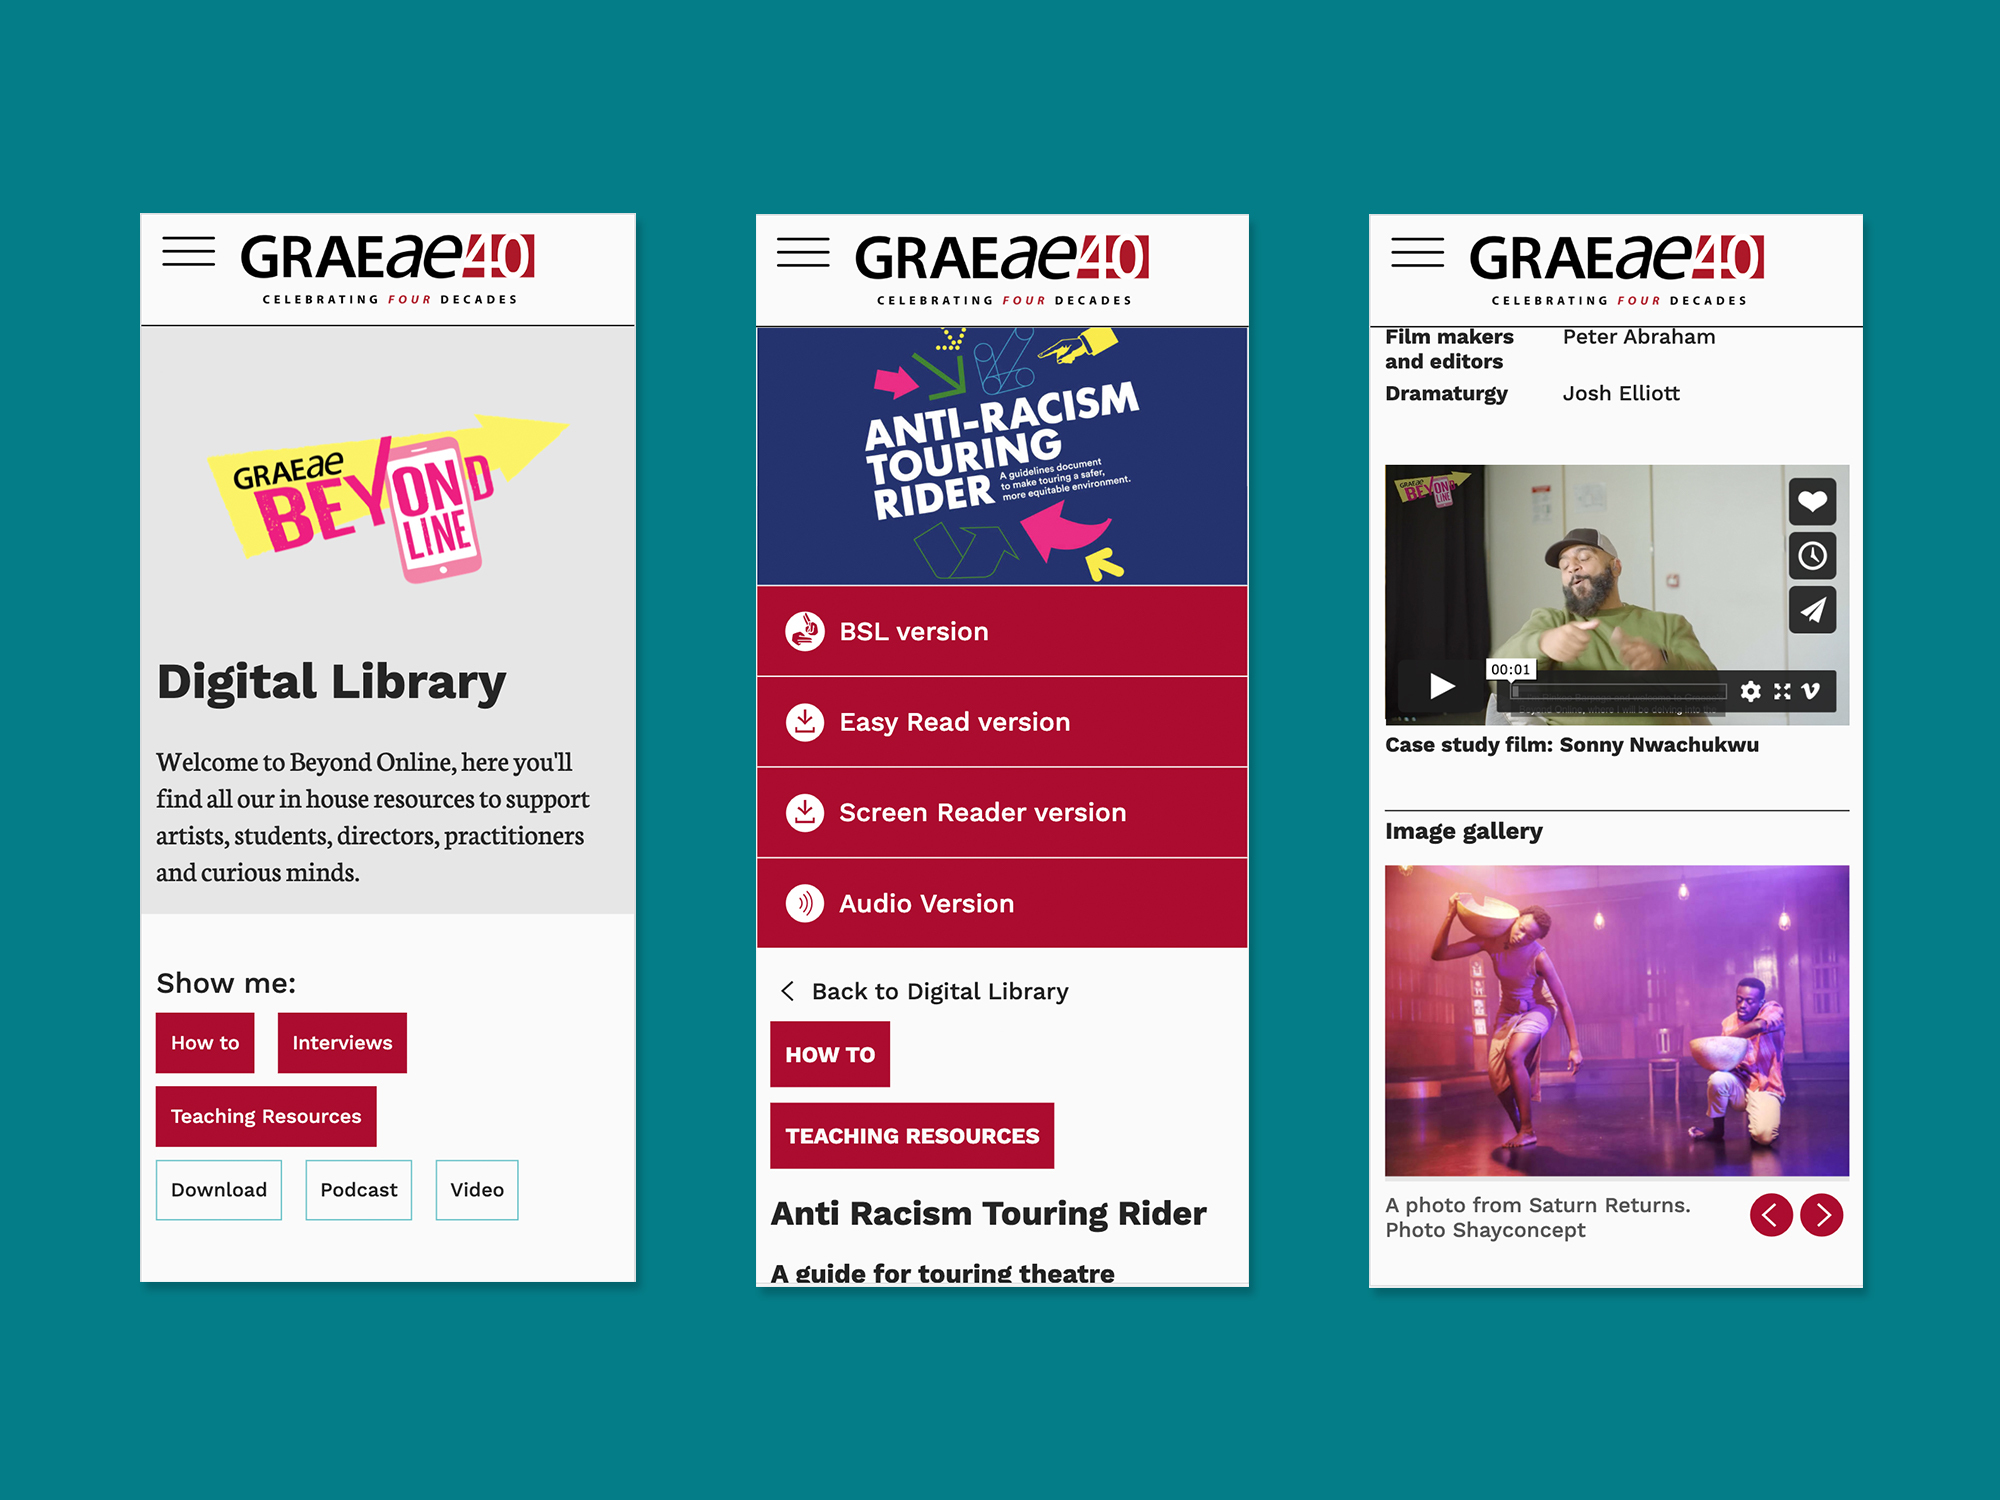 Three screenshots which display the Graeae Digital Library on a mobile display.